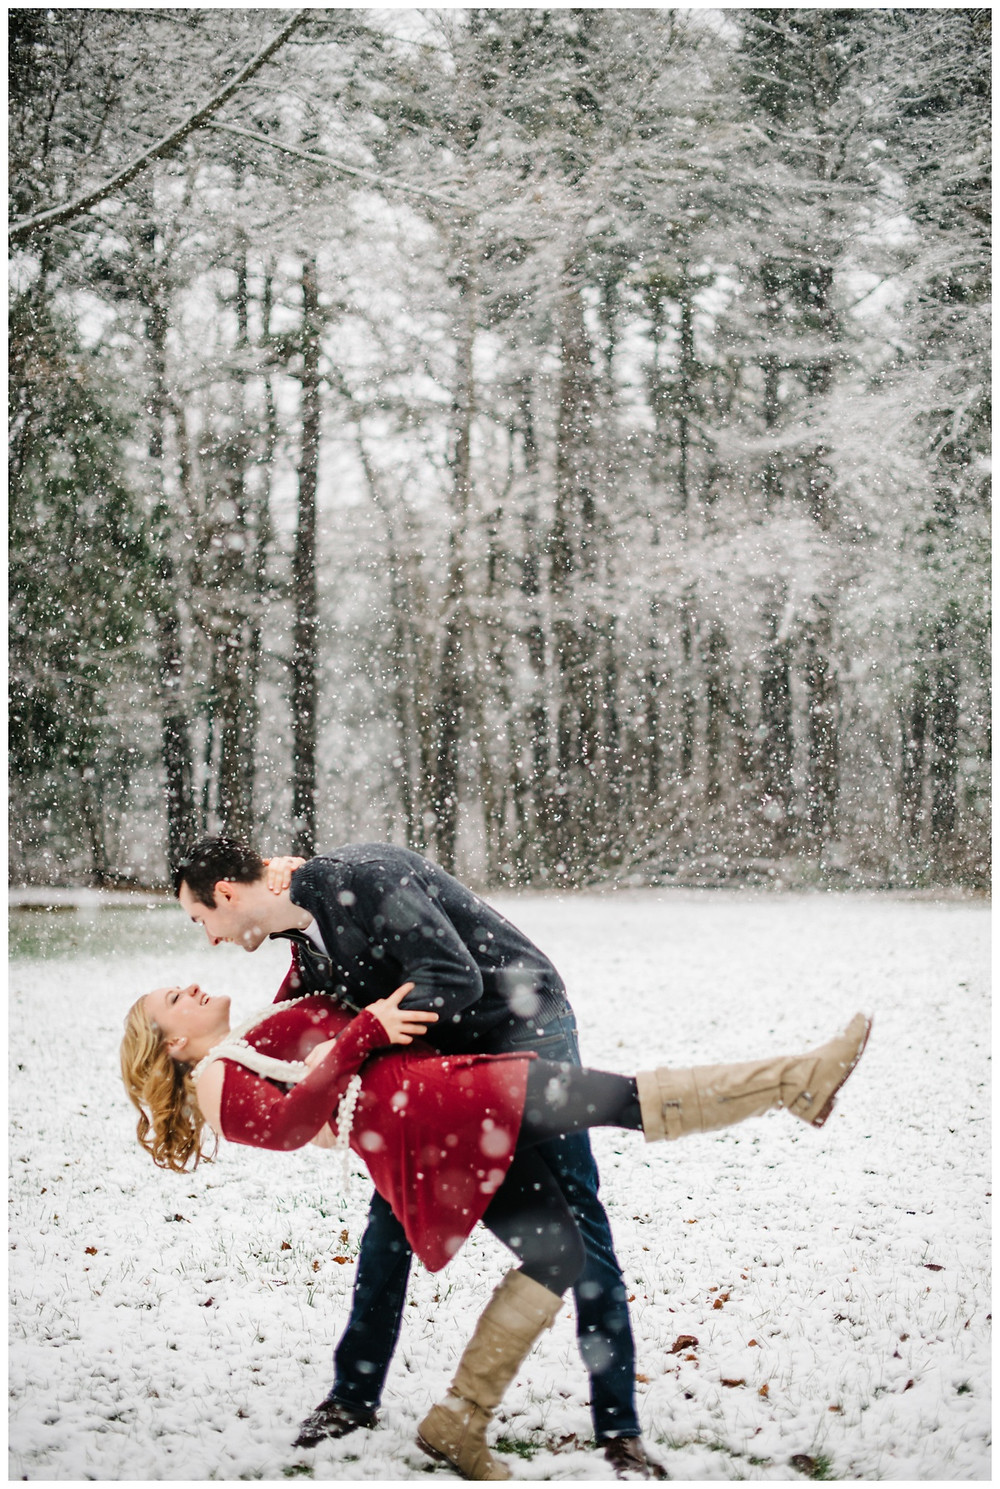 engaged-couple-dipping-at-snowy-sheboygan-engagement-session-by-green-bay-wedding-photographer-kyra-rane-photography